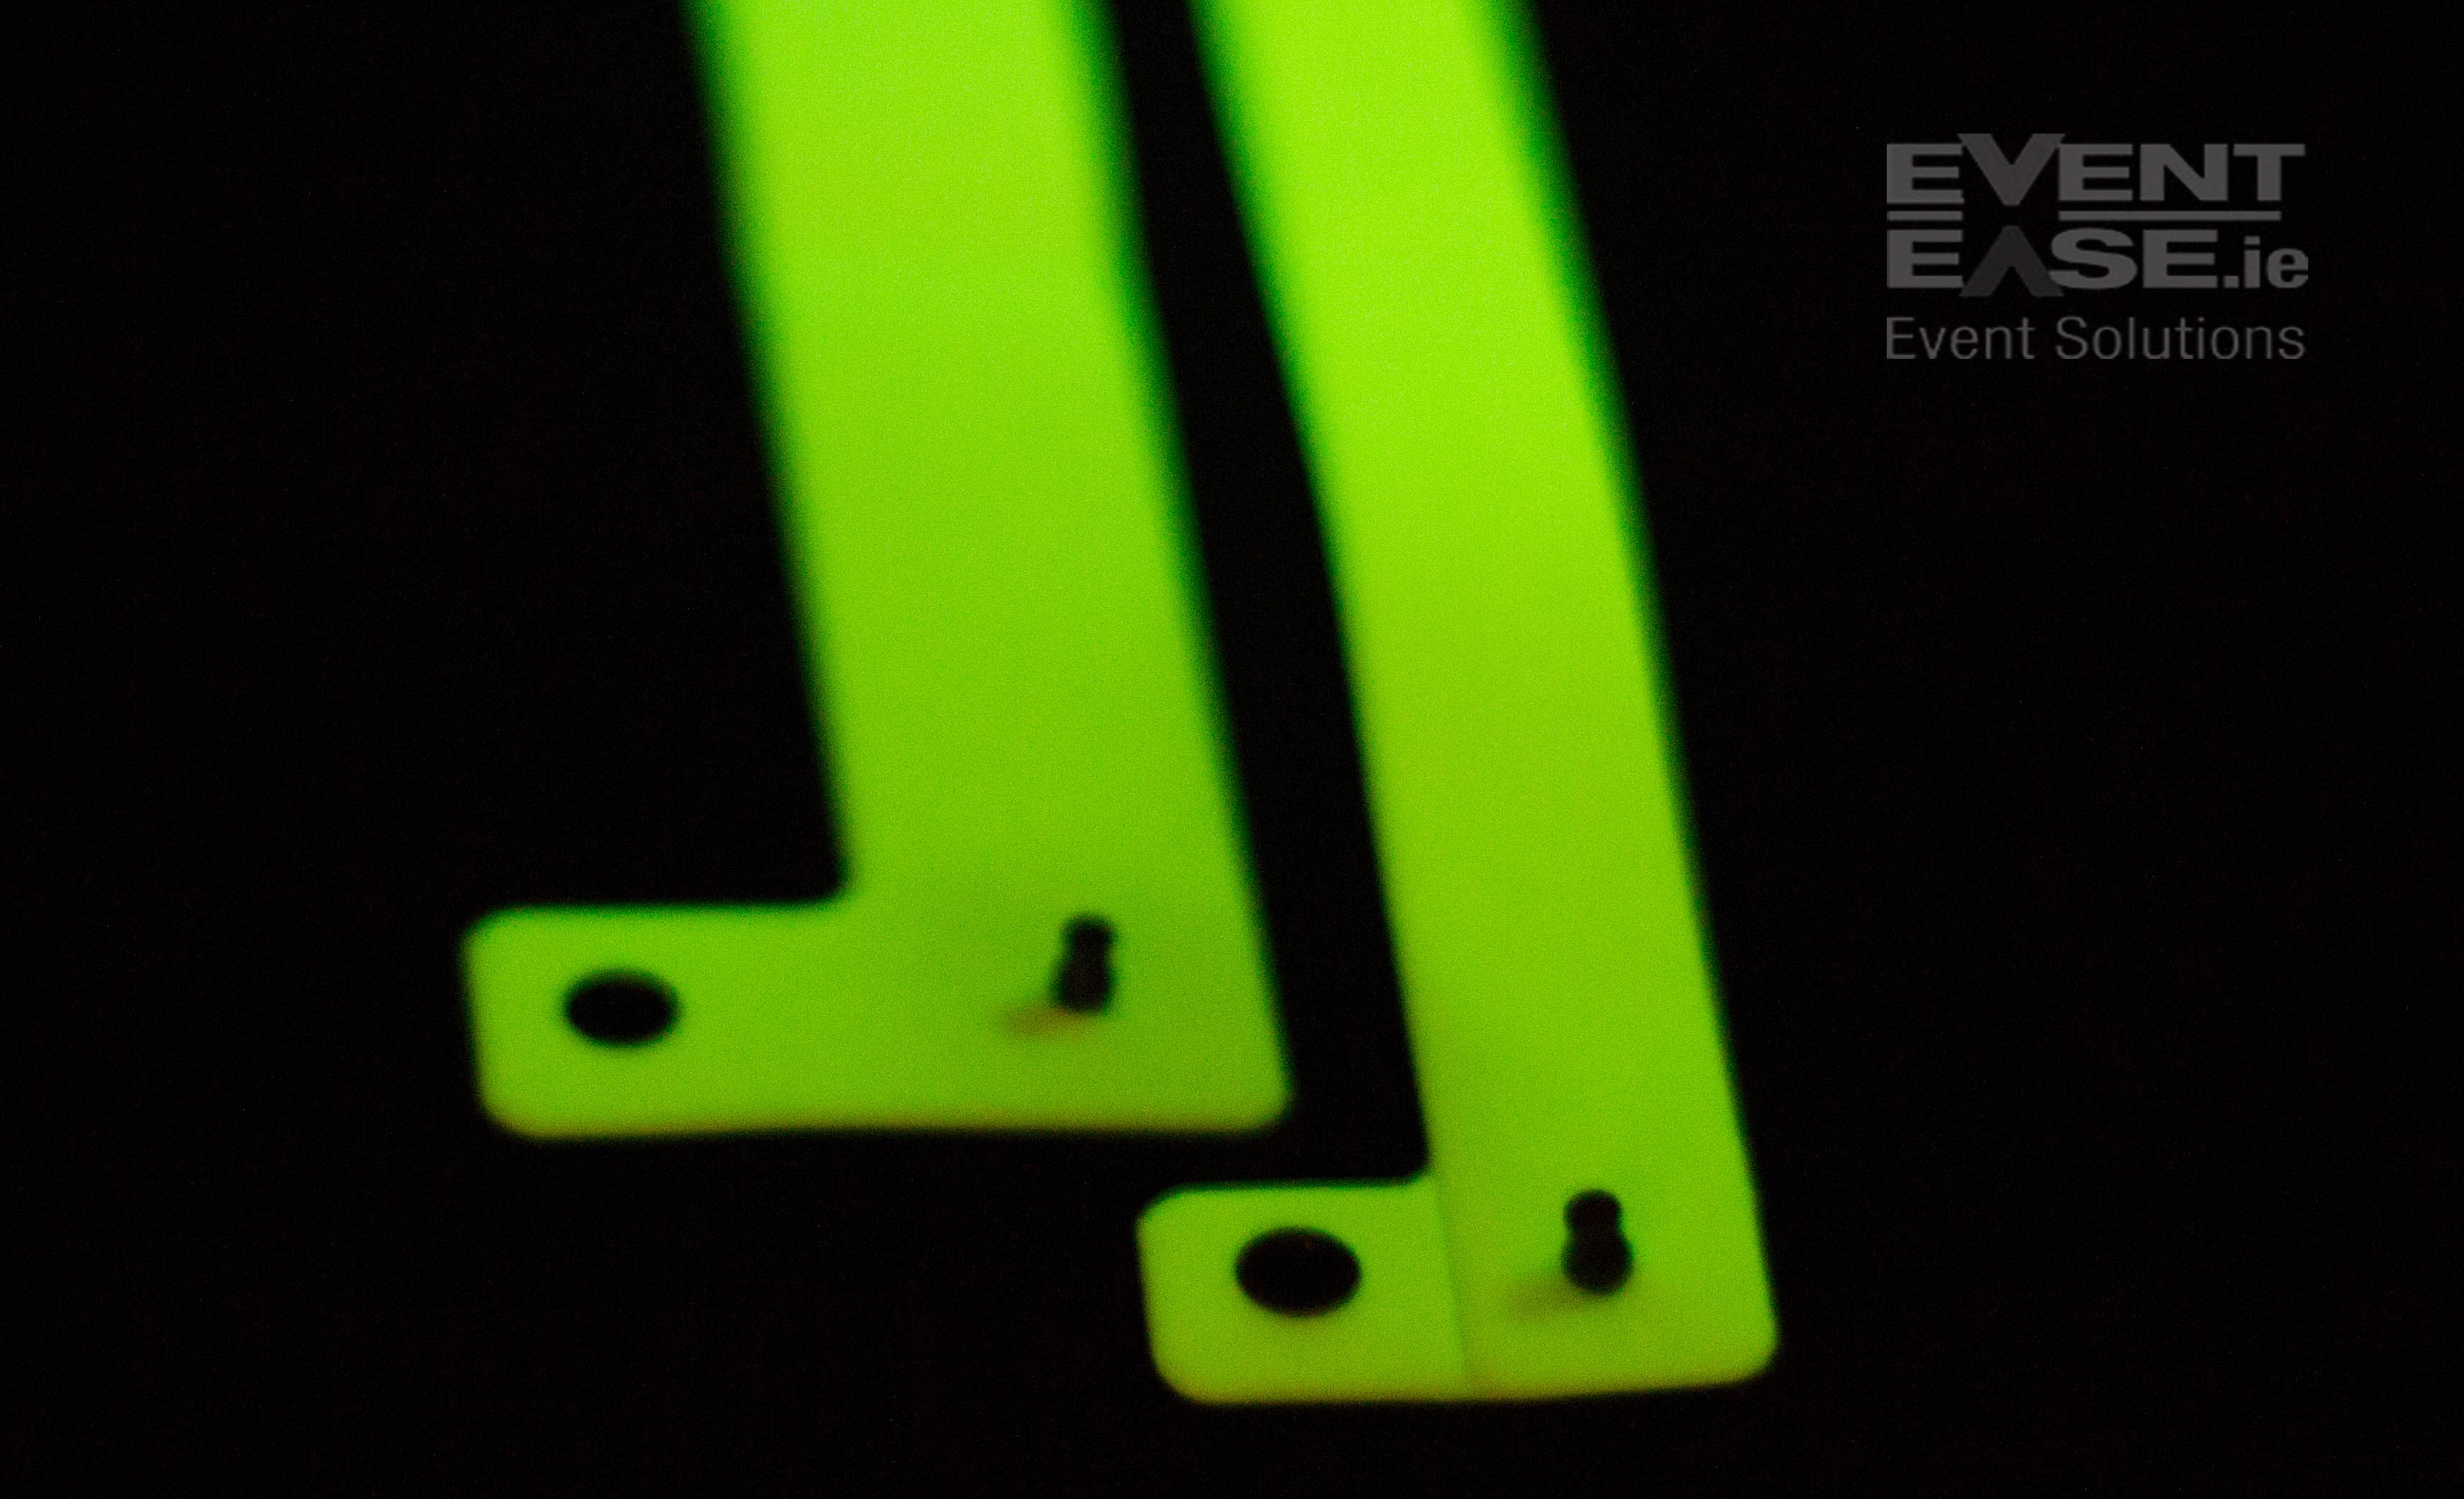 Vinyl Wristband glow in the dark